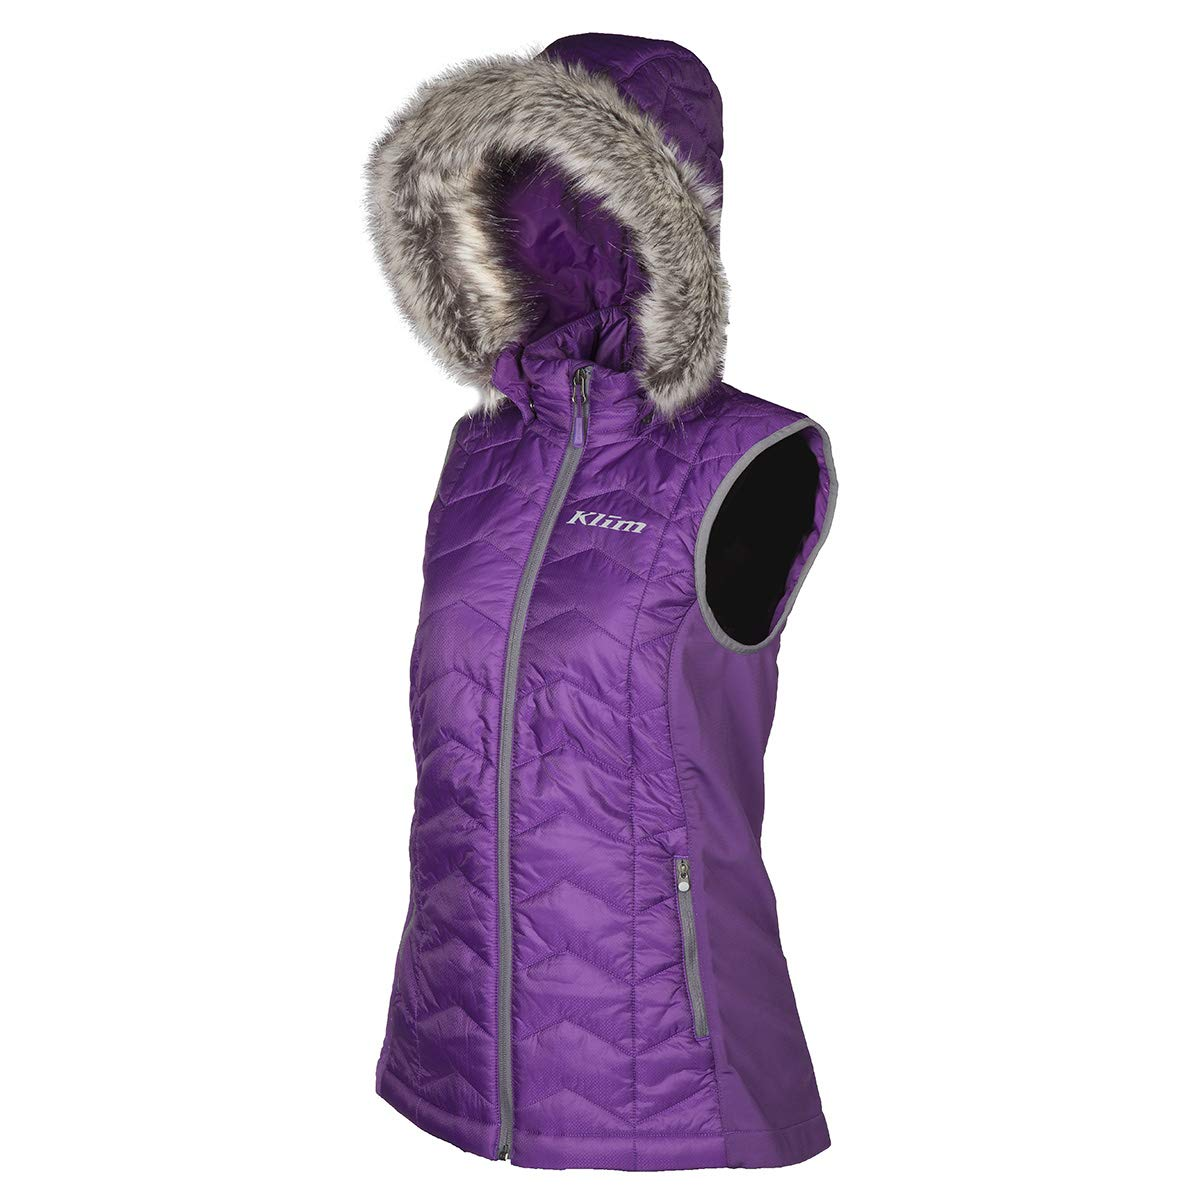 KlimレディースArise Vest with Removable Hood L 4083-001-140-790 B071VFTZ5Y パープル L